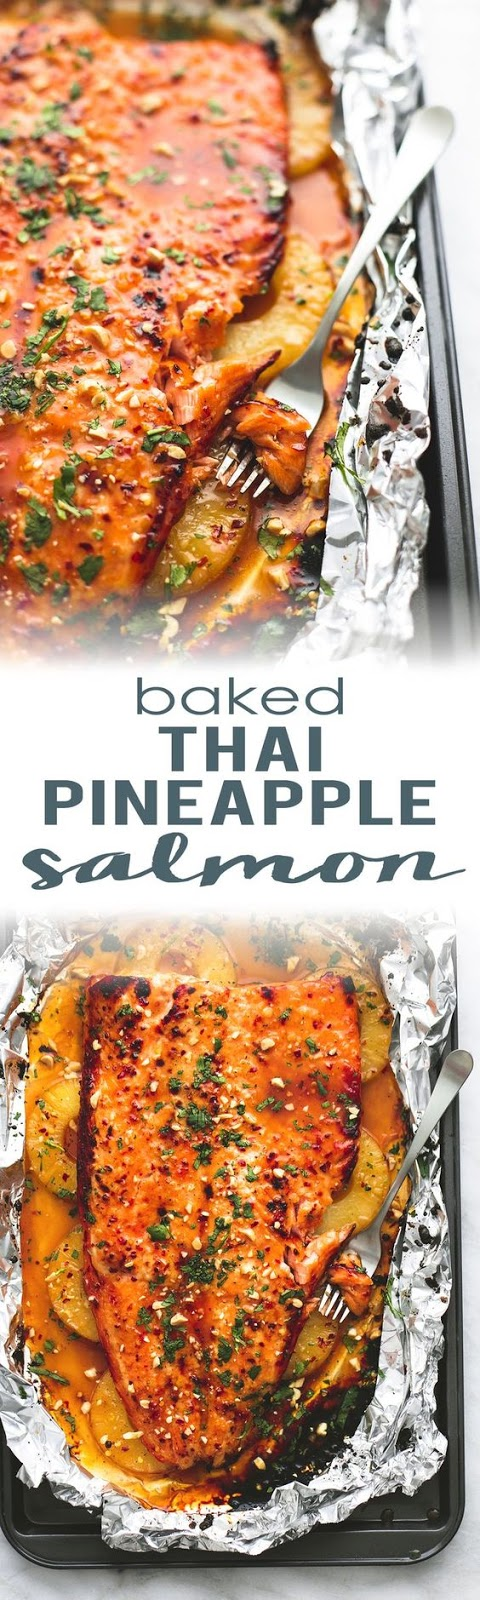 BAKED THAI PINEAPPLE SALMON IN FOIL